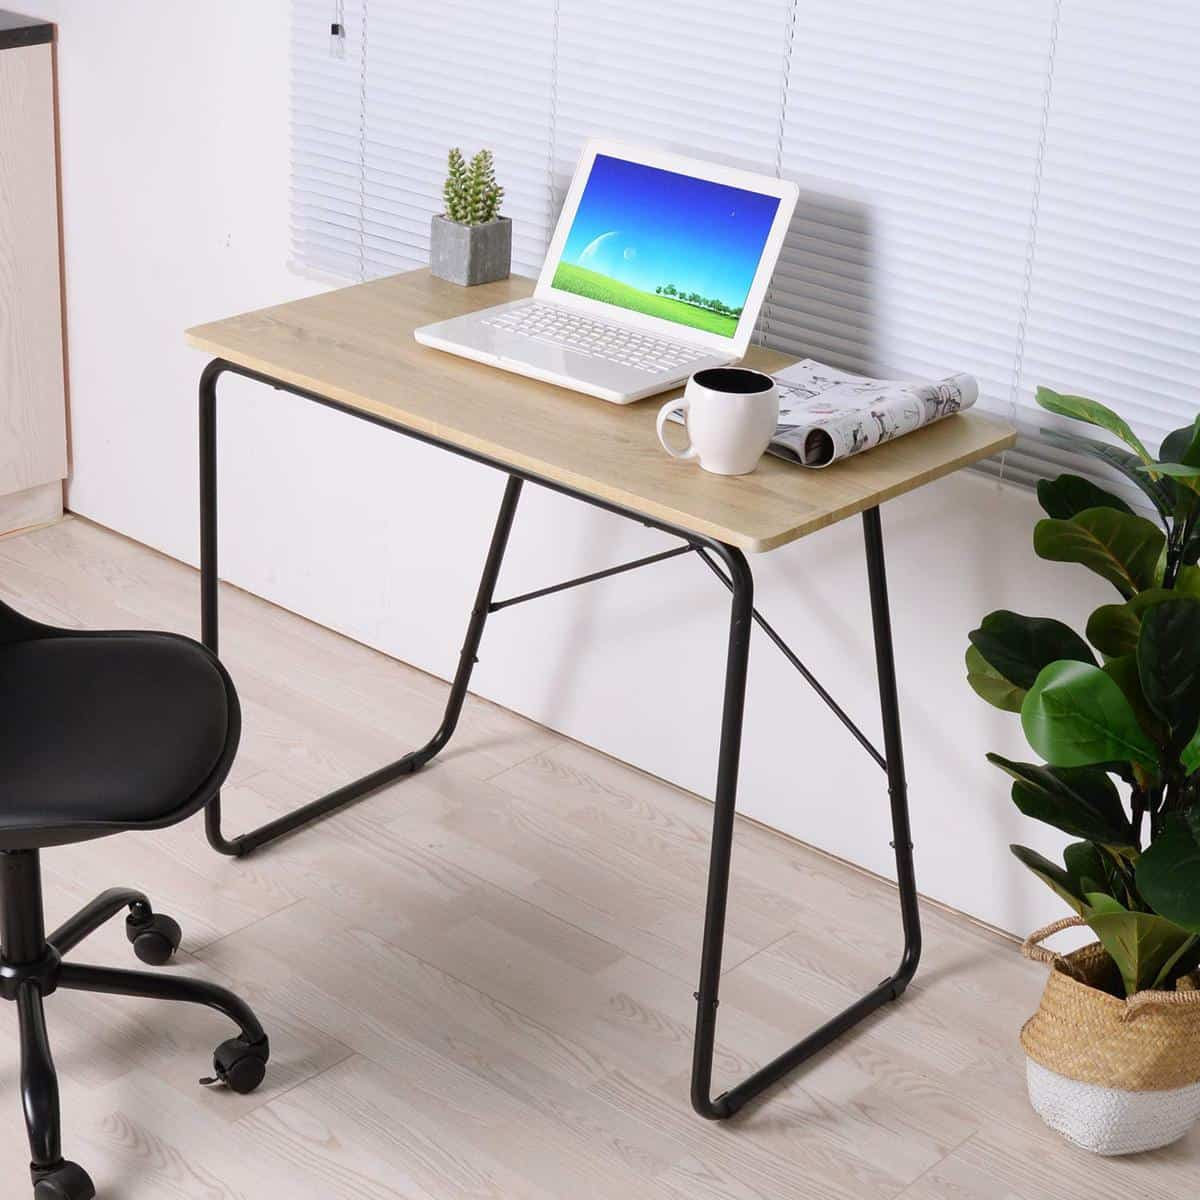 Amazing Home Office: 15 Amazing Small Computer Desks For Your Home Office